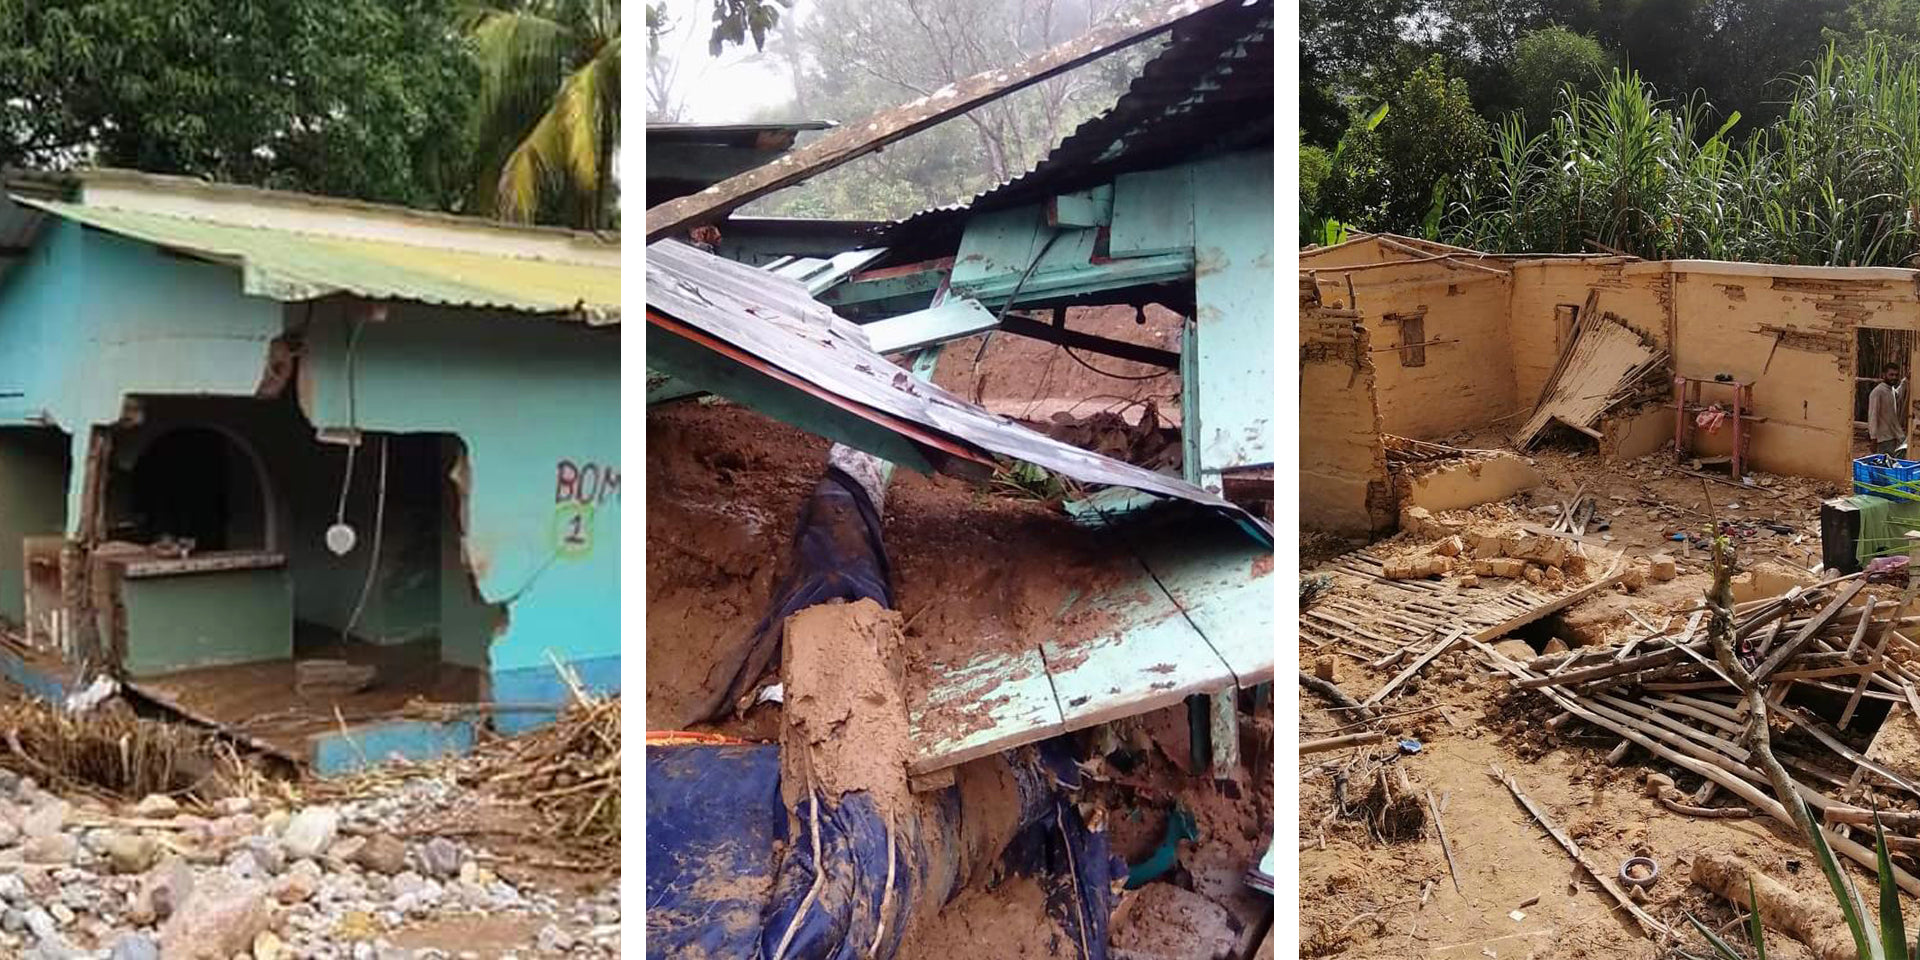 Hurricanes are especially damaging for poorer Honduran communities.